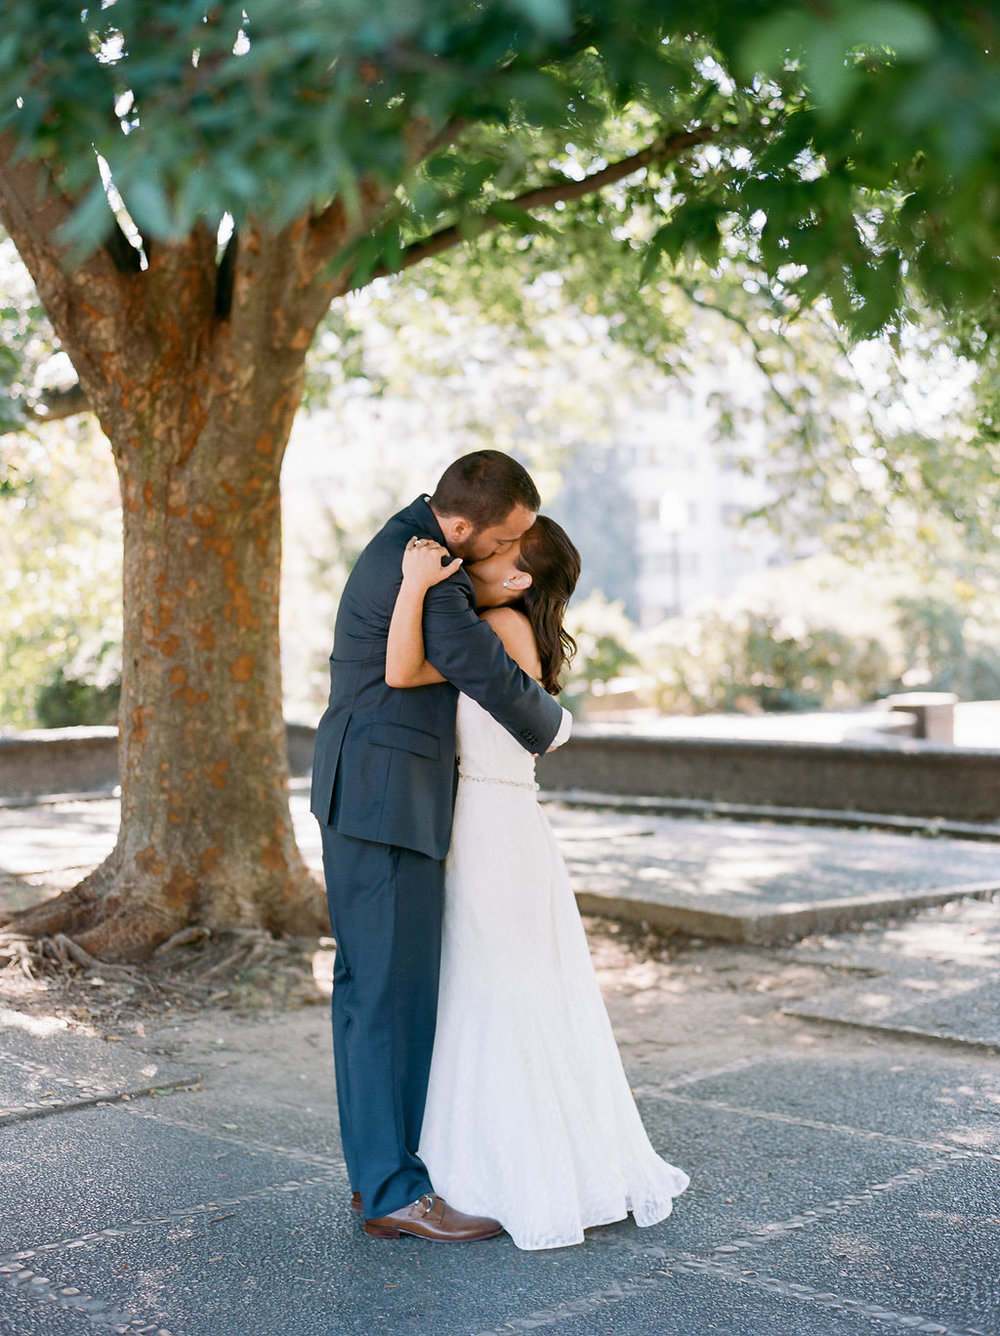 Longview Gallery Wedding Washington DC Lissa Ryan Photography Sincerely Pete Events Couple First Look